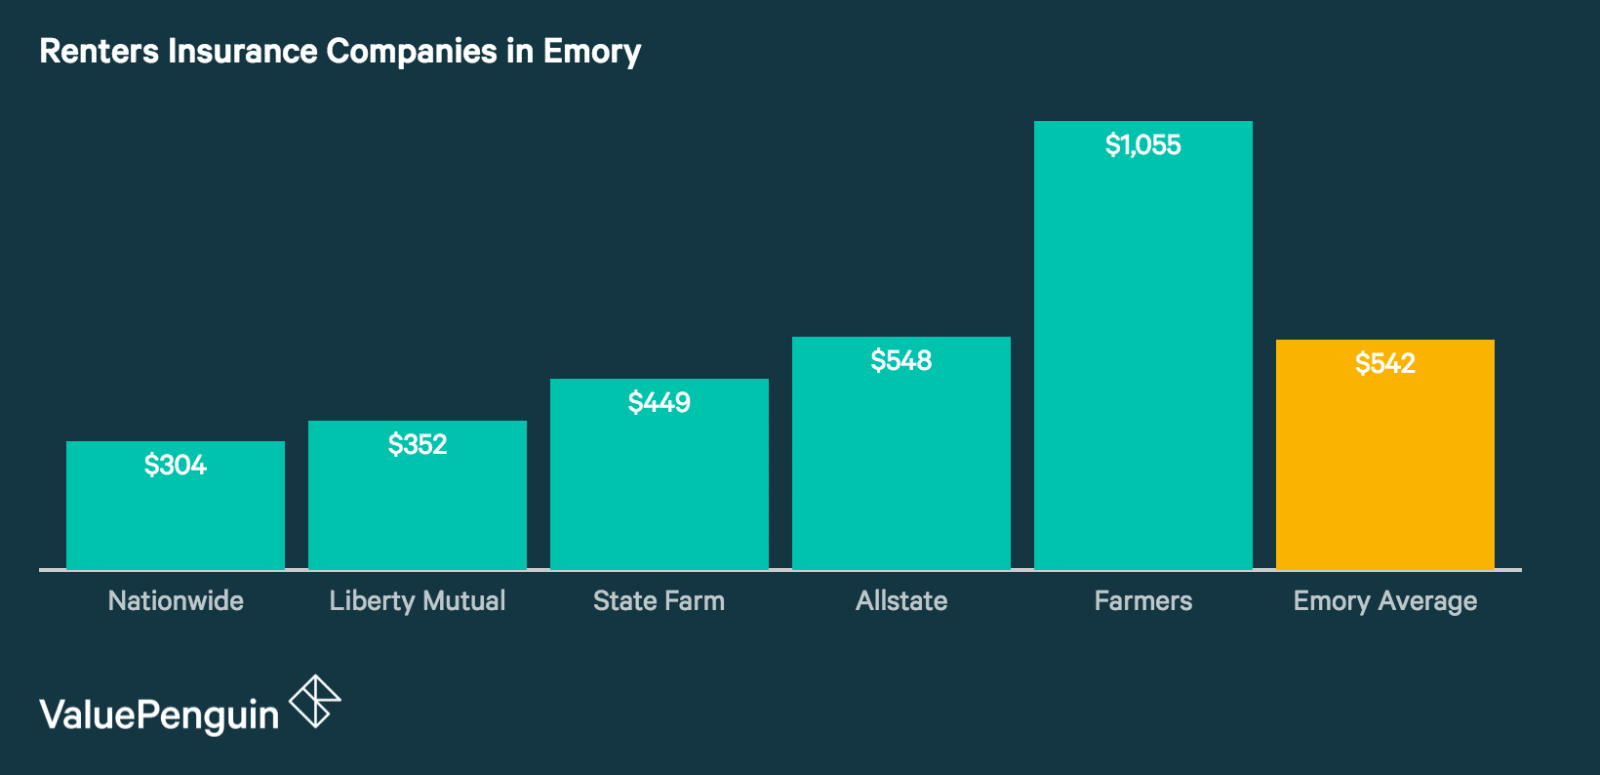 Emory's Best Renters Insurance Companies